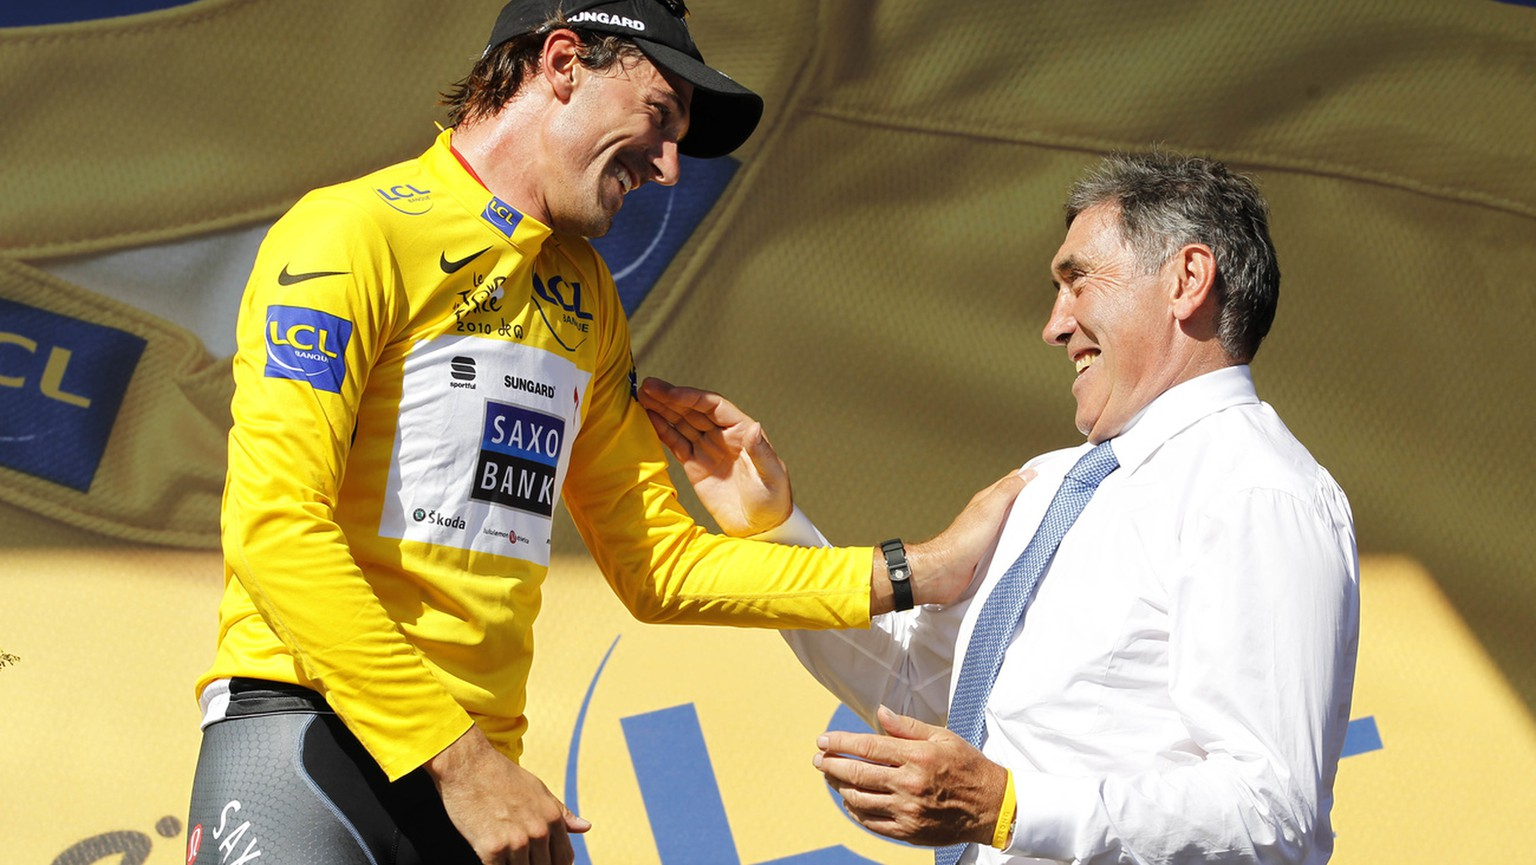 Fabian Cancellara of Switzerland, wearing the overall leader's yellow jersey, left, and Belgium cyclist and Tour de France winner Eddy Merckx, right, react on the podium after the first stage of the Tour de France cycling race over 223,5 kilometers (139 miles) with start in Rotterdam, Netherlands and finish in Brussels, Belgium, Sunday July 4, 2010. (AP Photo/Bas Czerwinski)